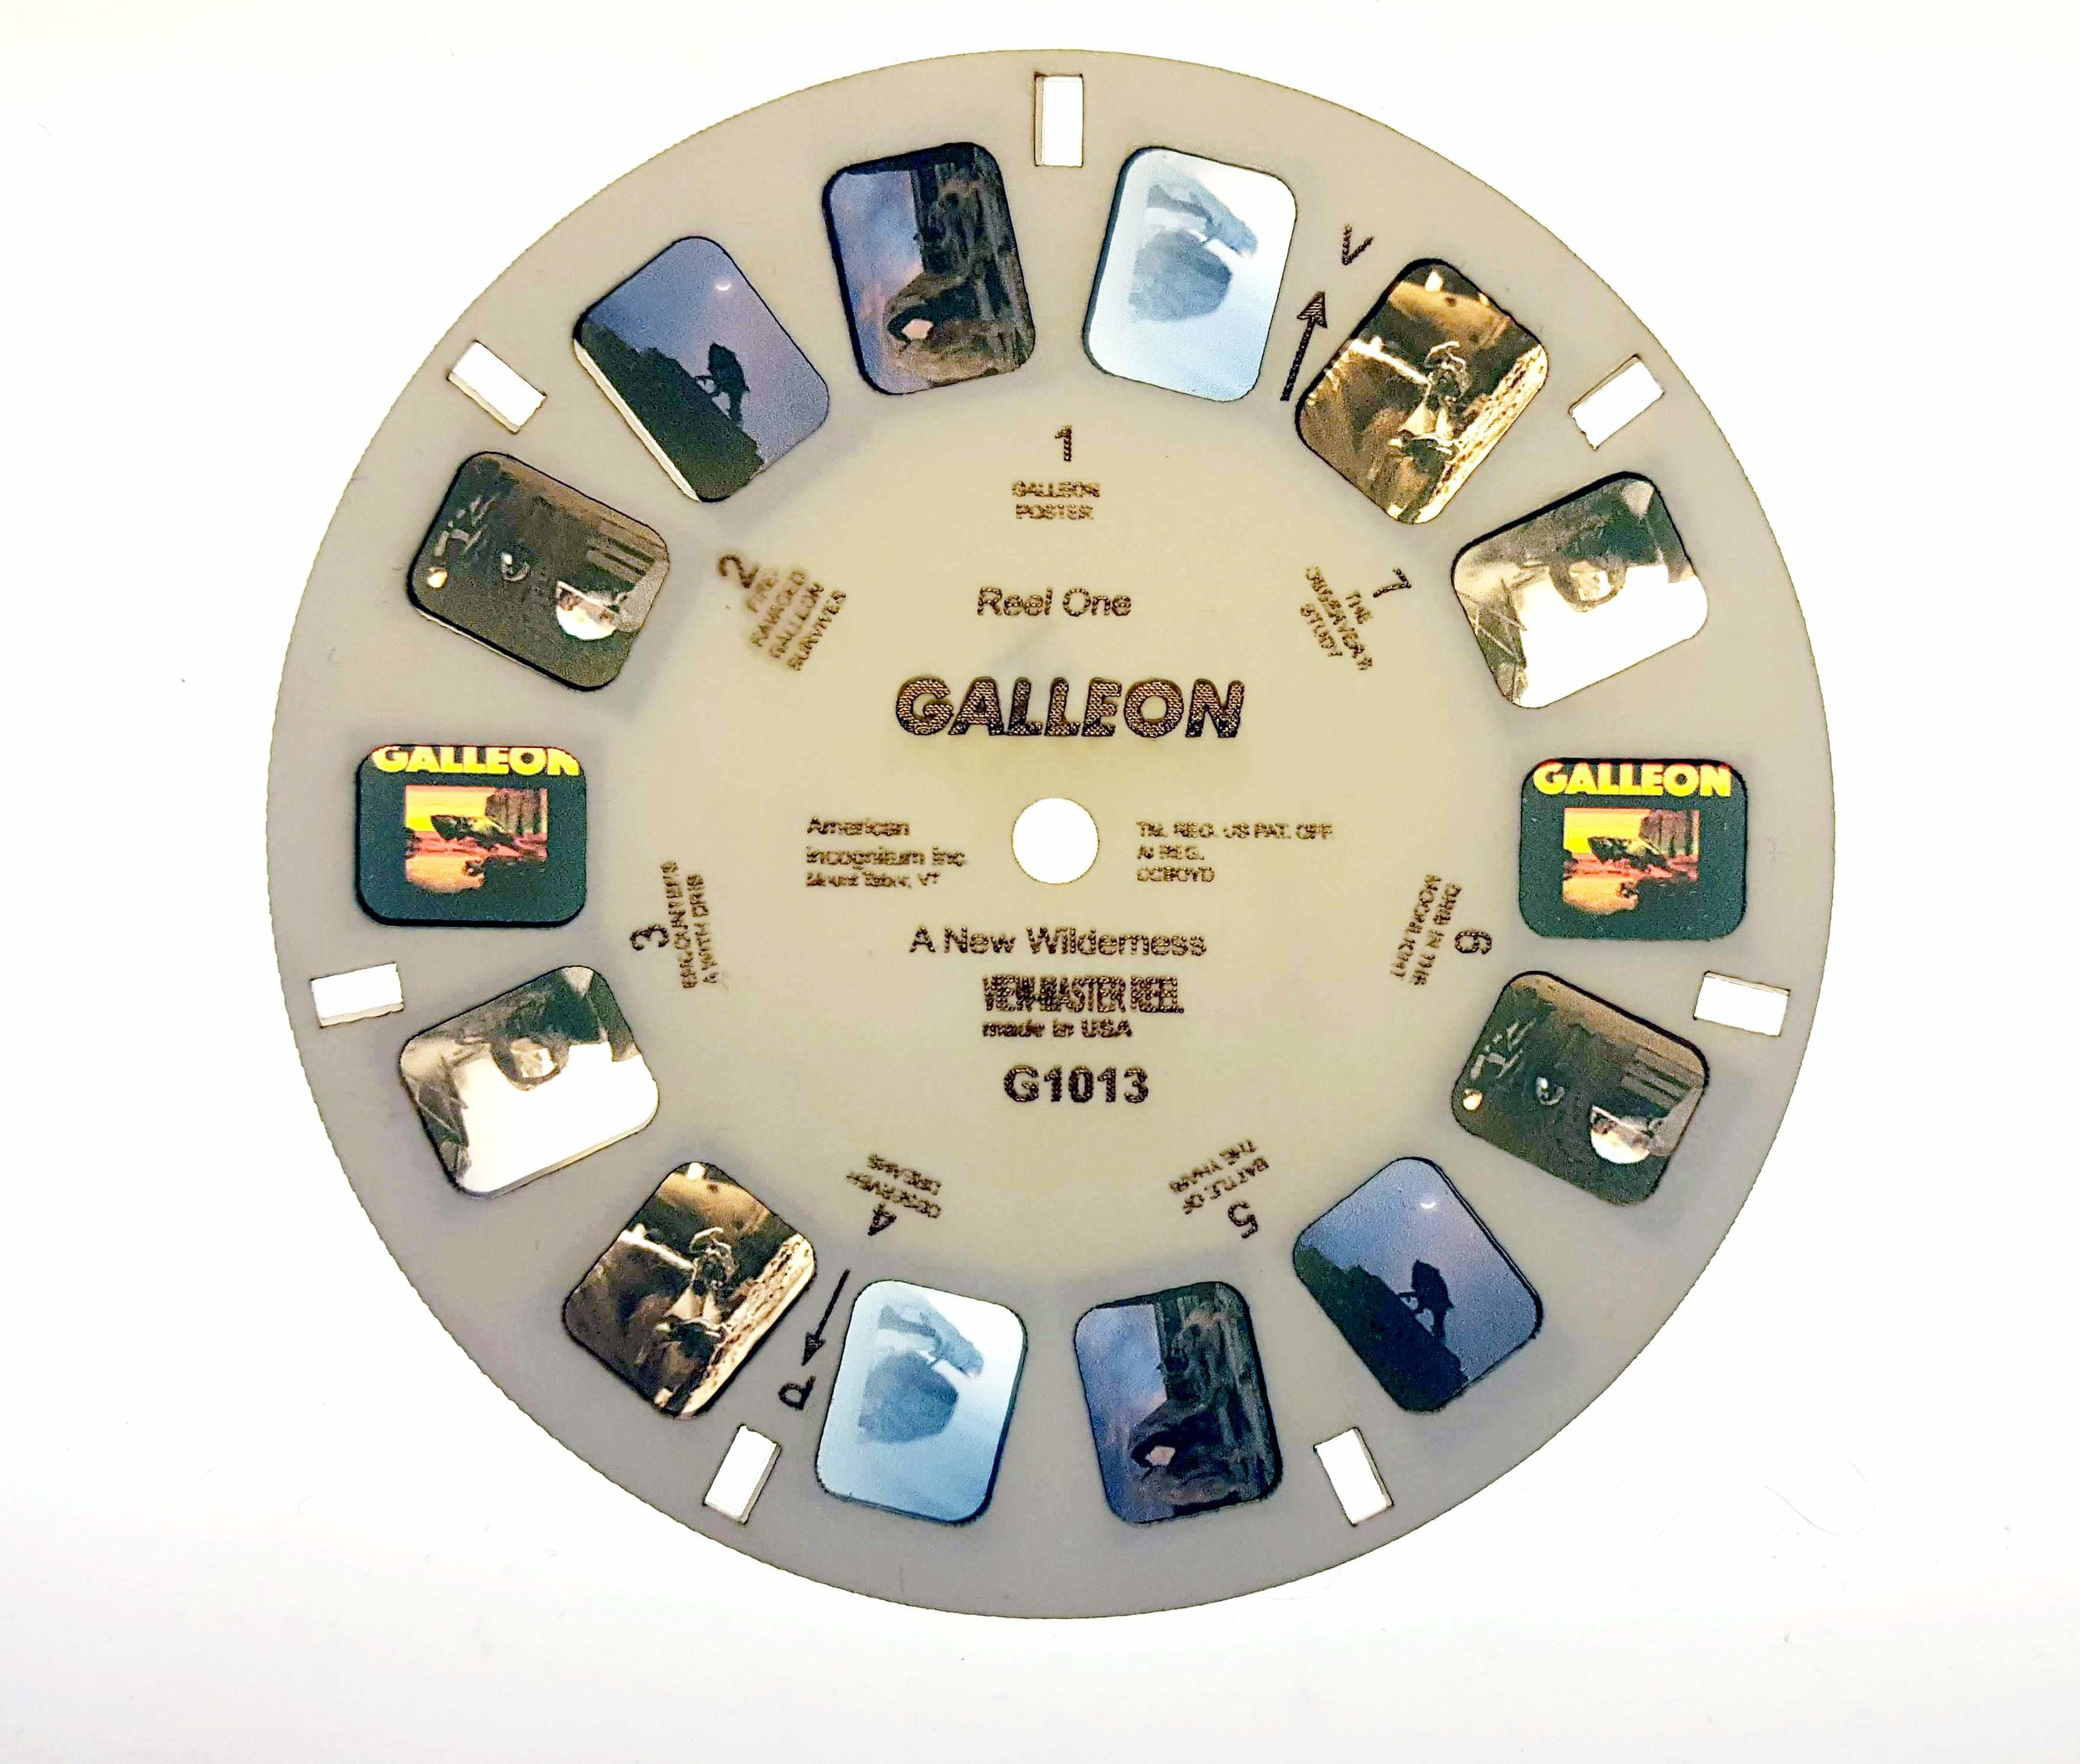 View-Master reel of Galleon